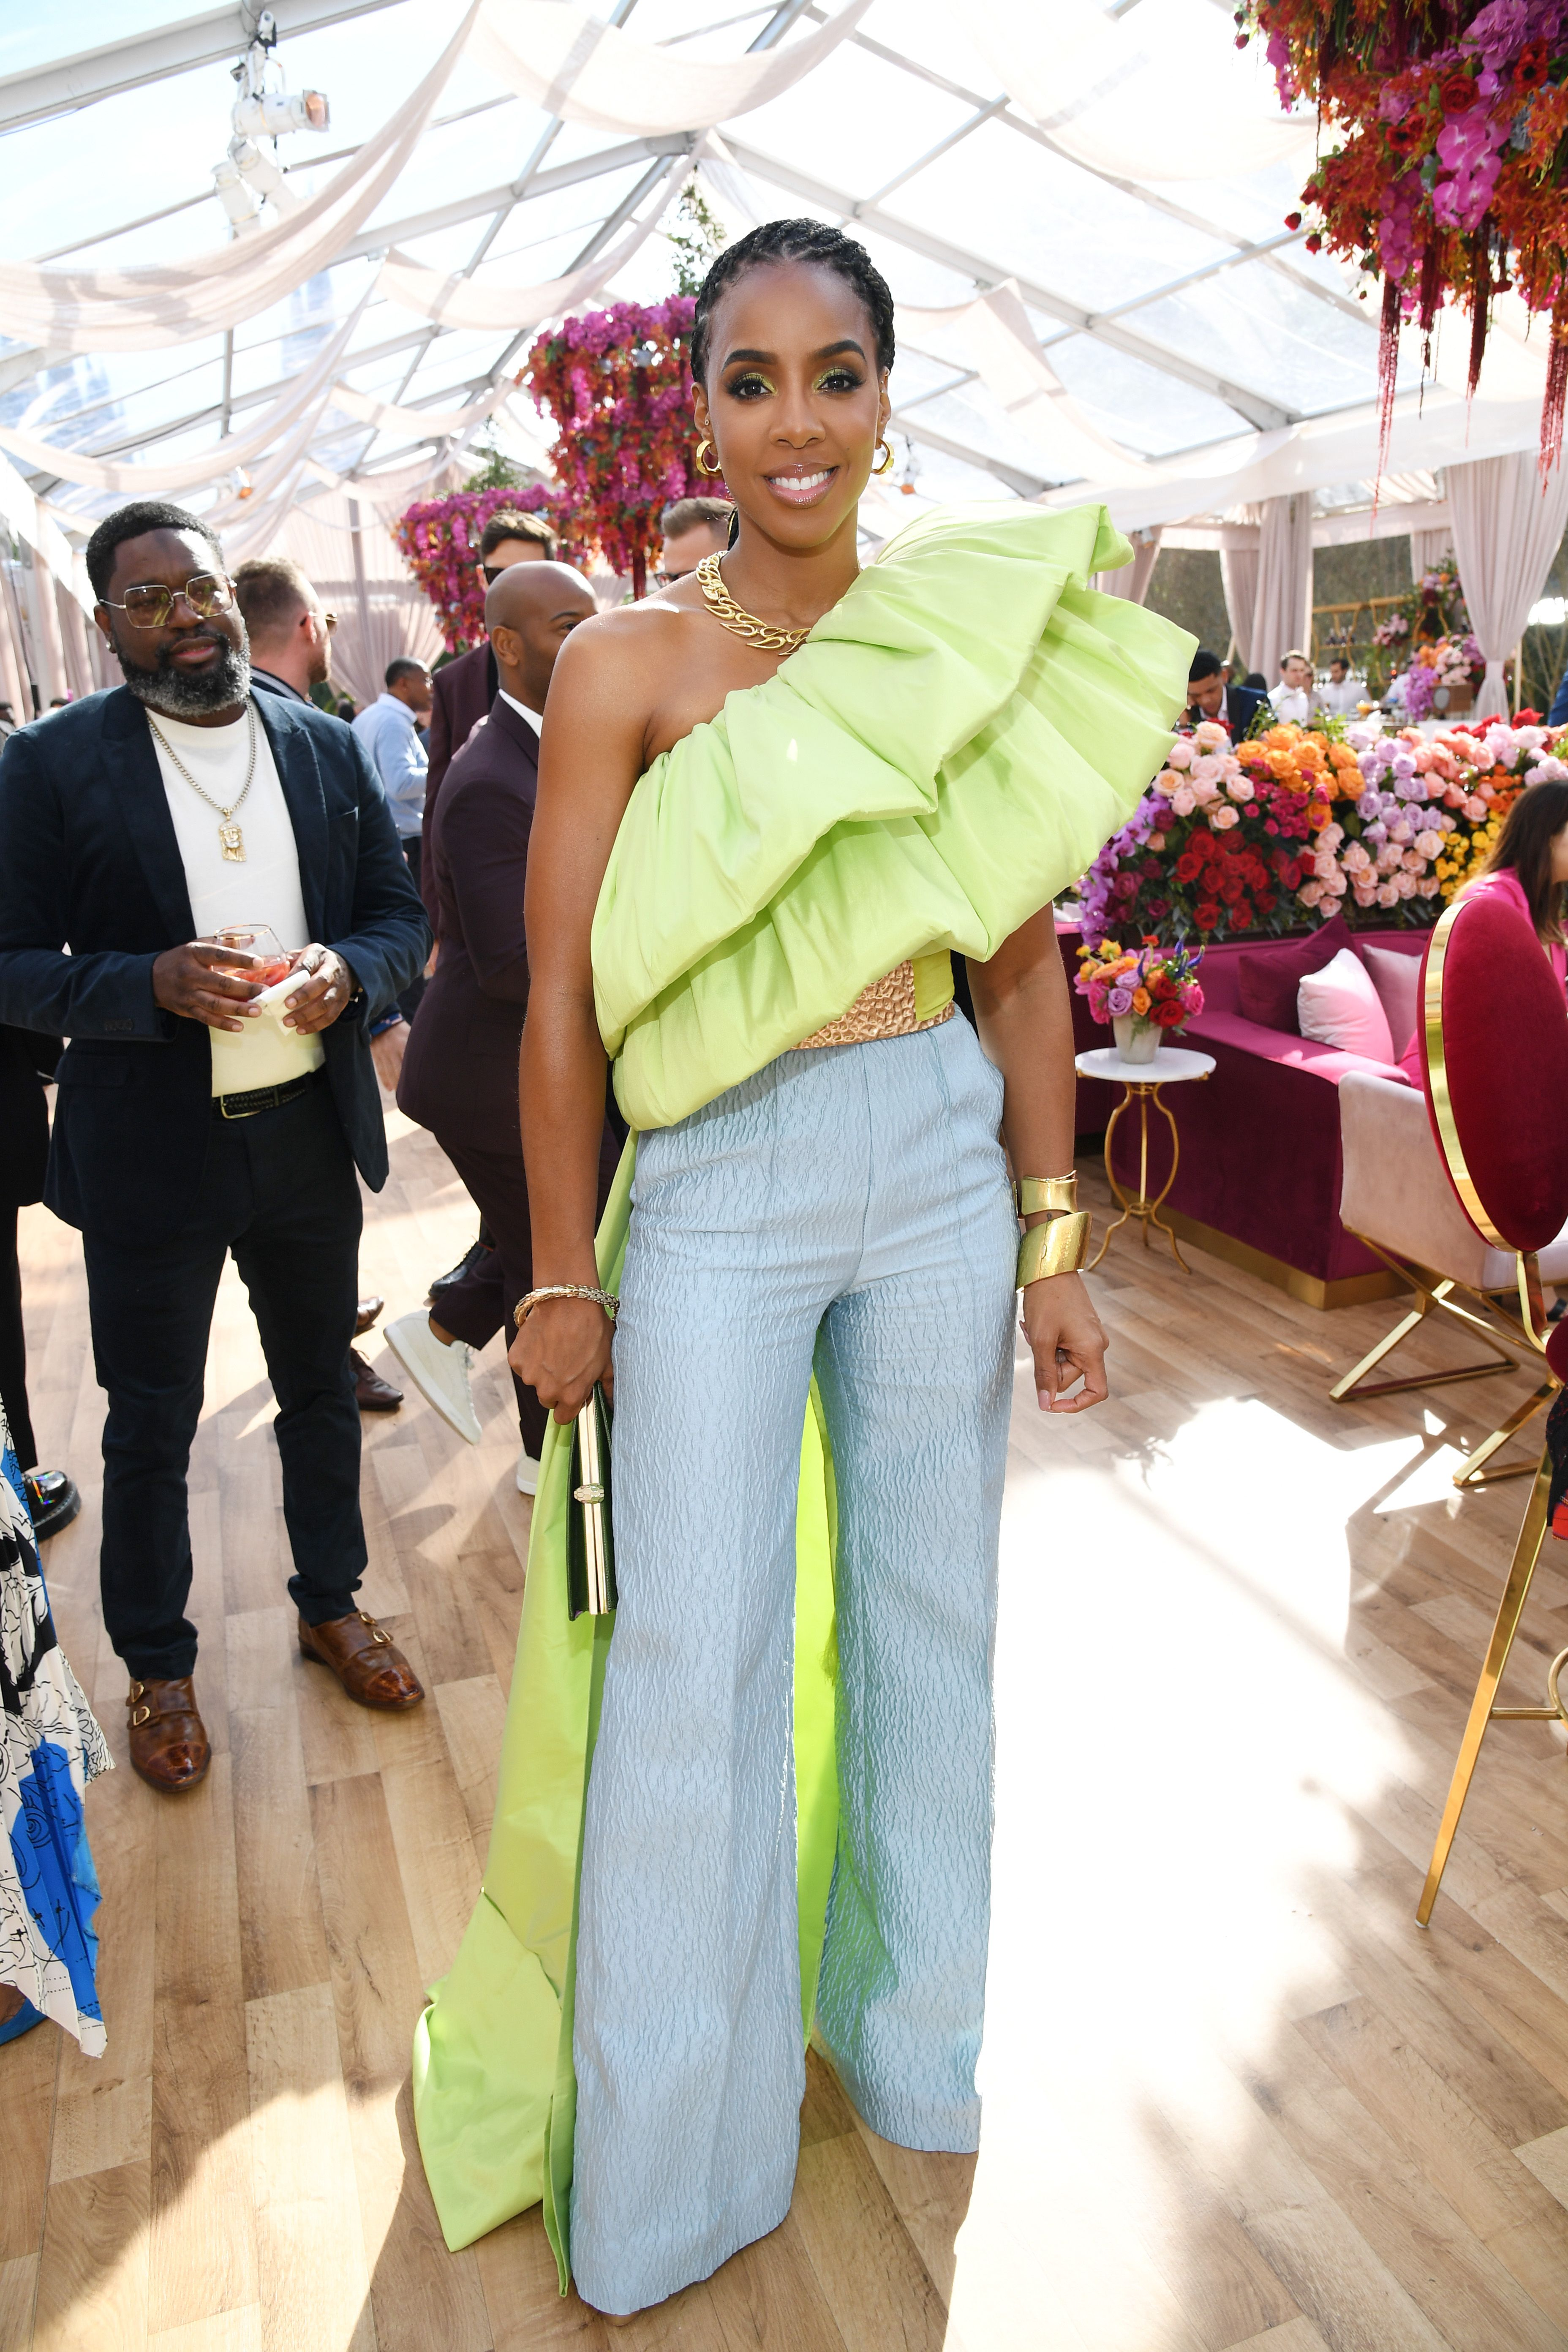 """Singer Kelly Rowland at Roc Nation's """"The Brunch"""" on January 25, 2020 in Los Angeles. │Photo: Getty Images"""